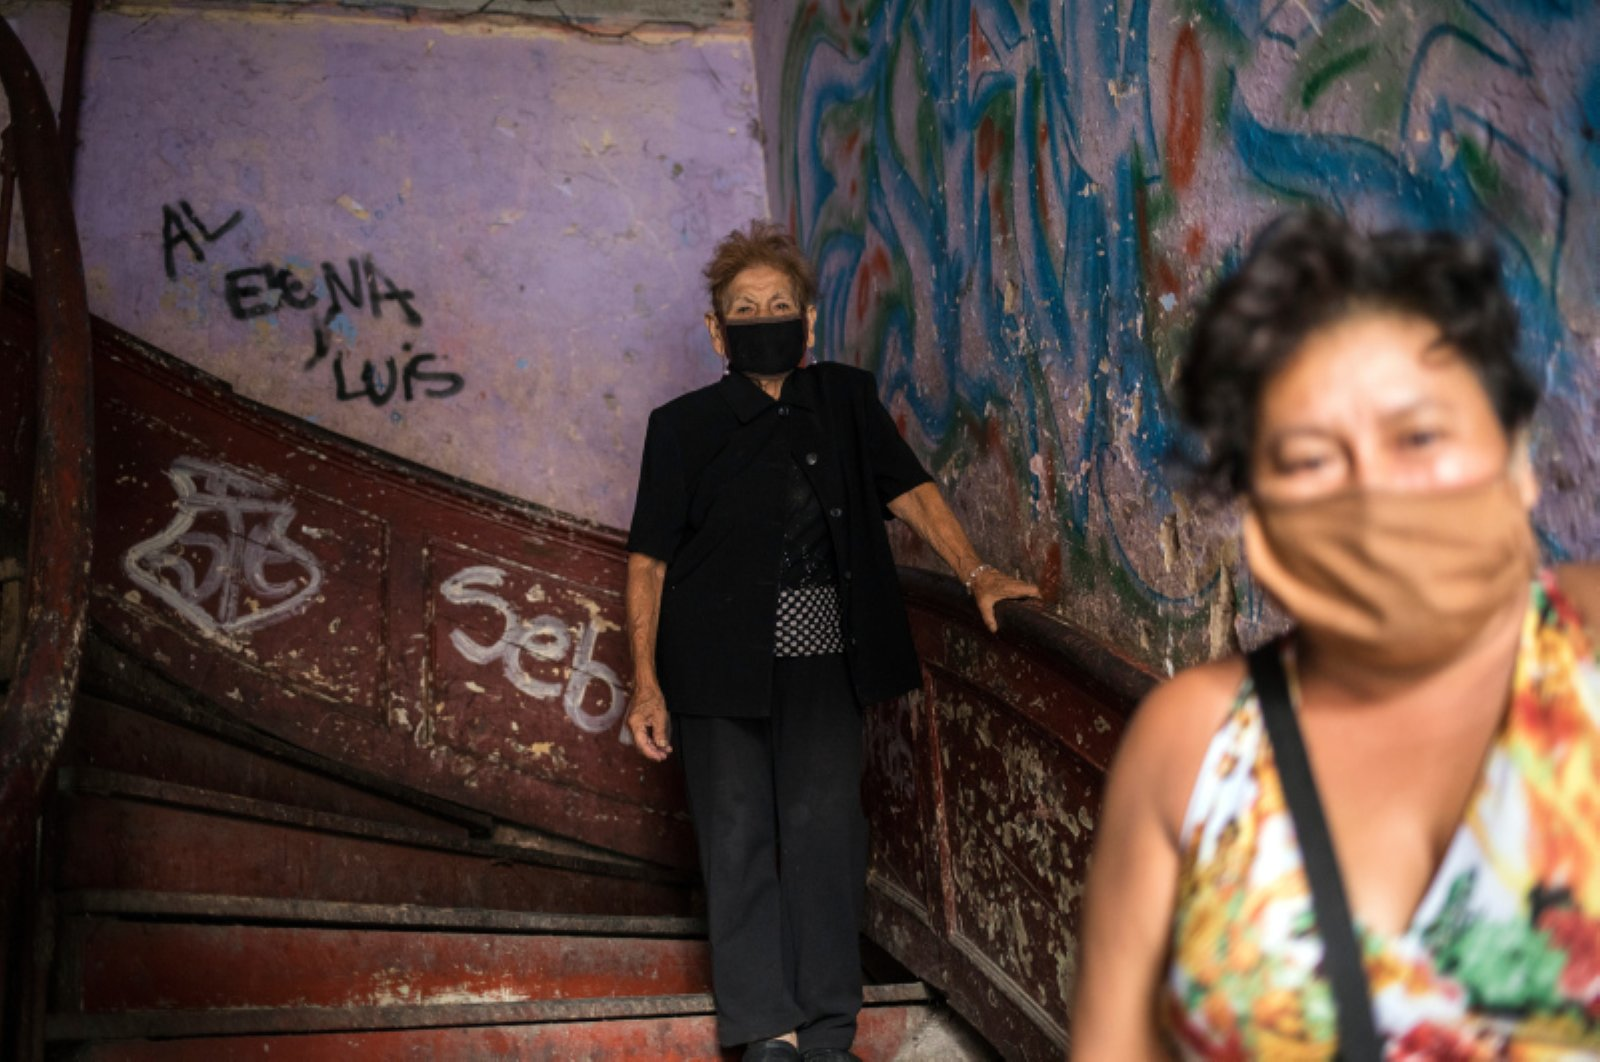 """Maria Isabel Aguinaga, 72, wearing a protective face mask, descends the stairs of her crumbling residential building nicknamed """"Luriganchito"""" after the country's most populous prison, Lima, Peru, March 29, 2020. (AP Photo)"""